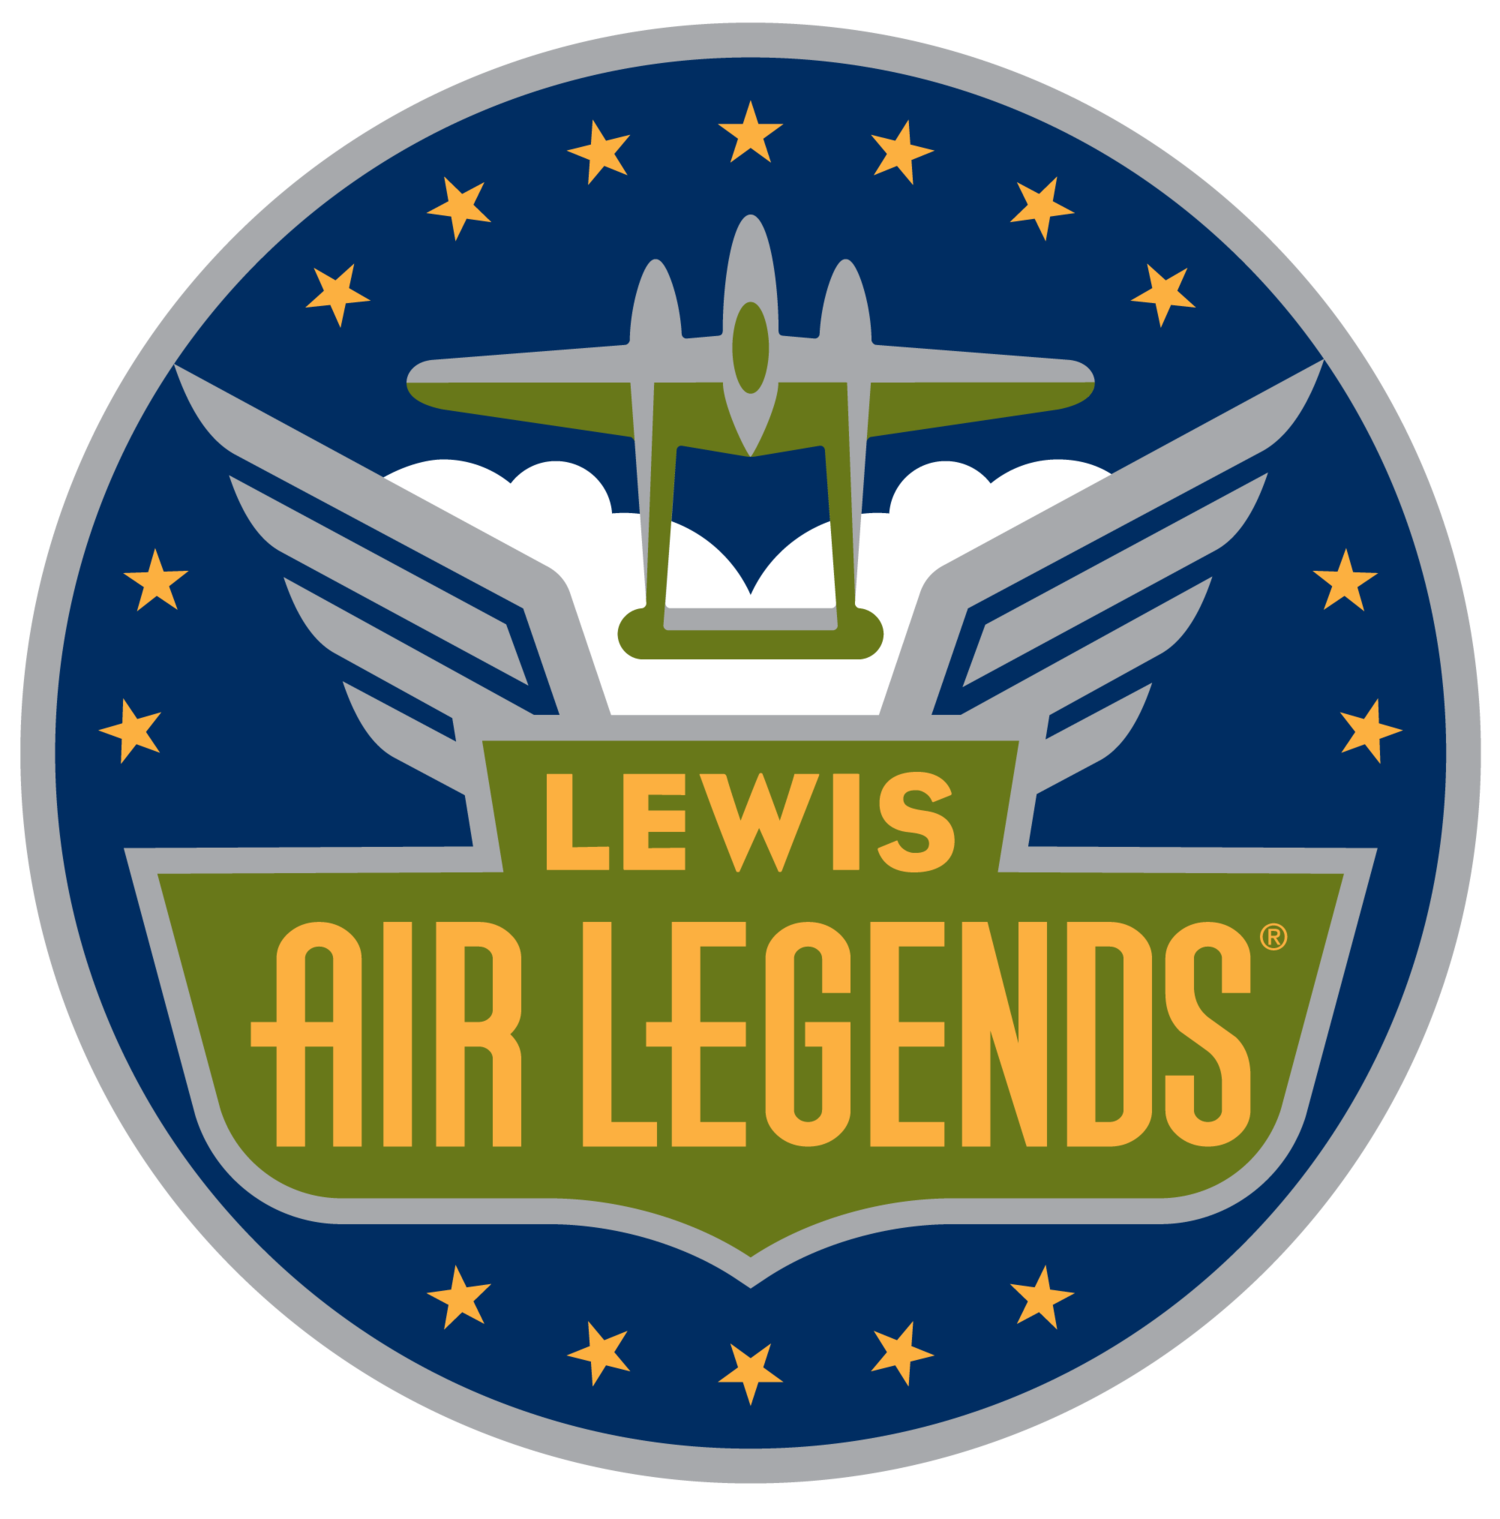 Lewis Air Legends